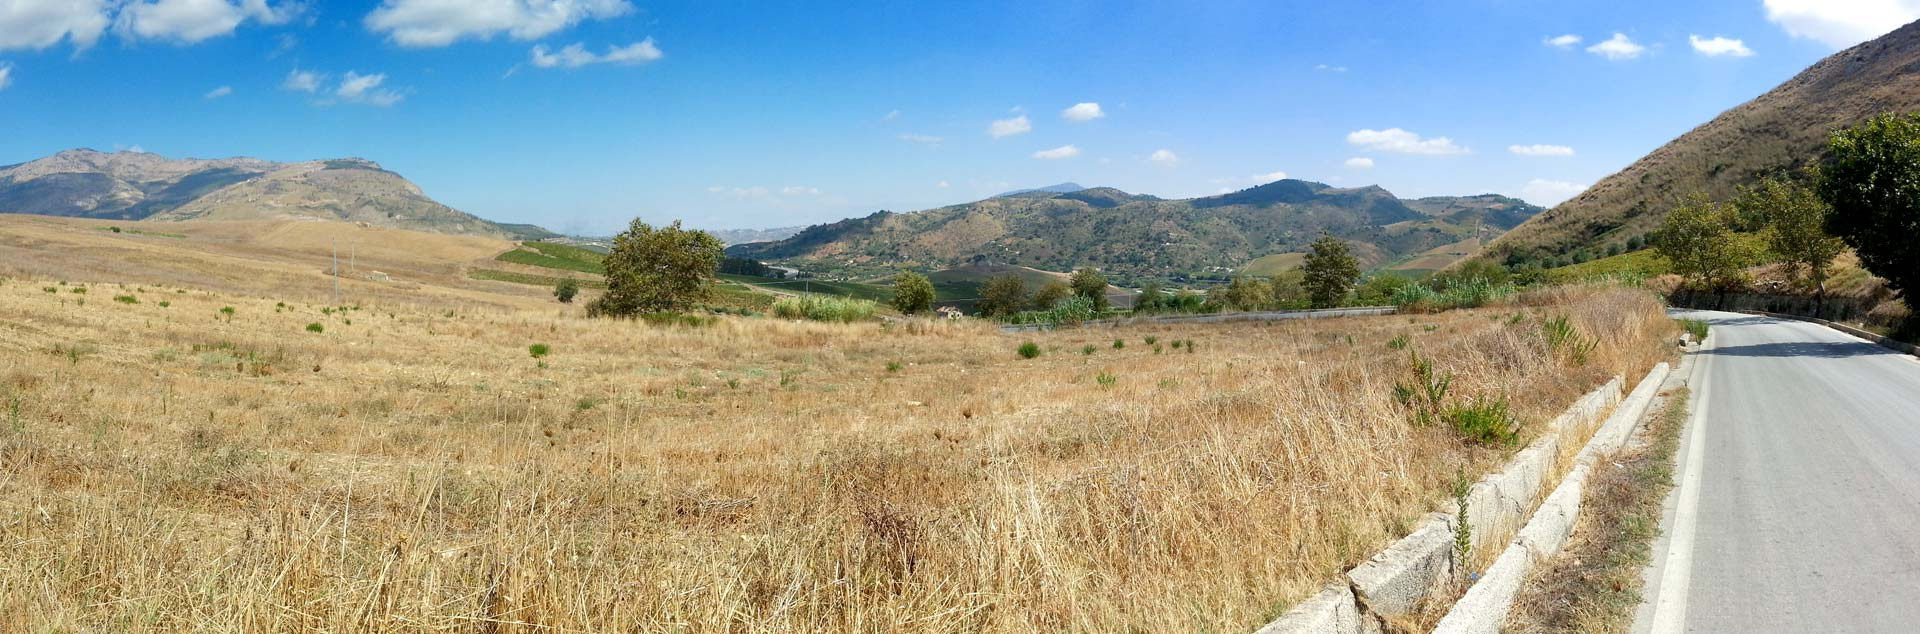 The area near Segesta in the province of Trapani (September 2014)